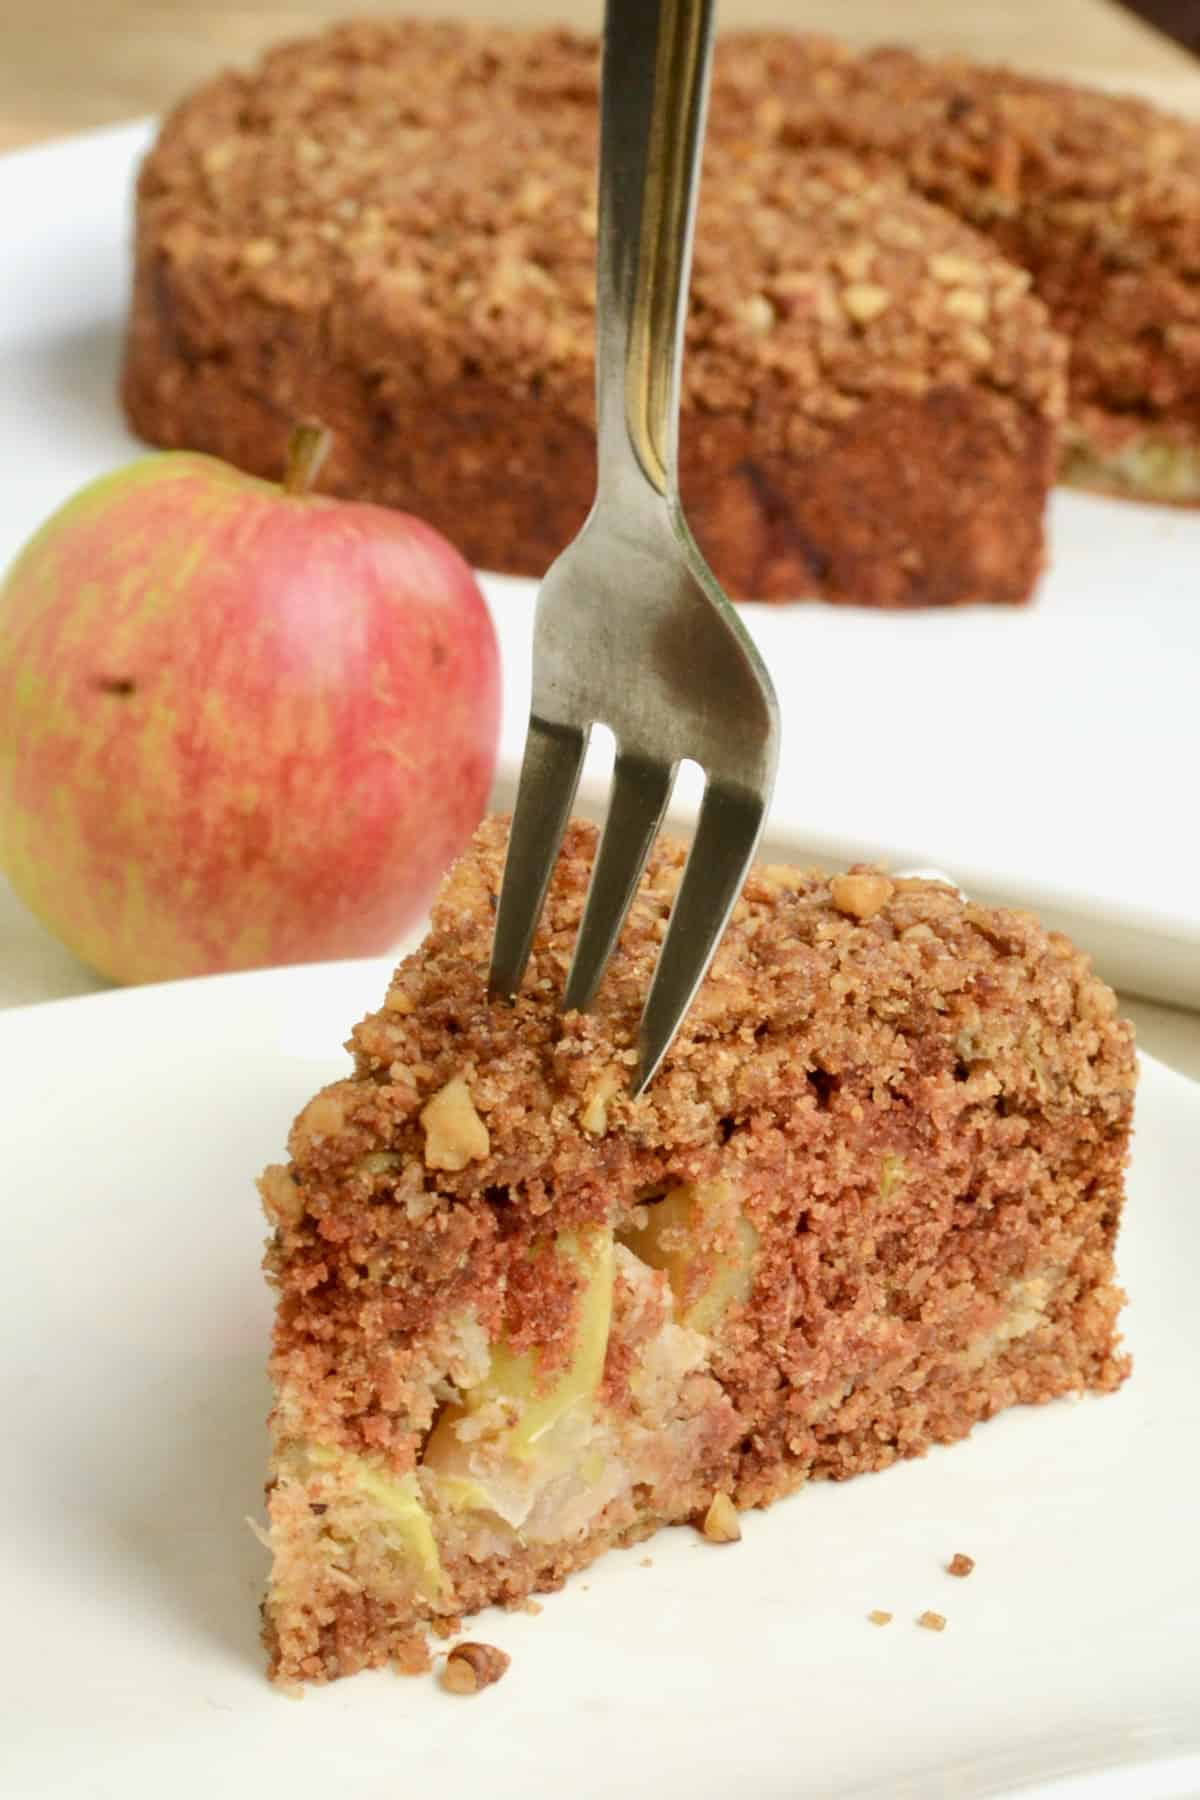 A fork digs in to a slice of apple cake.